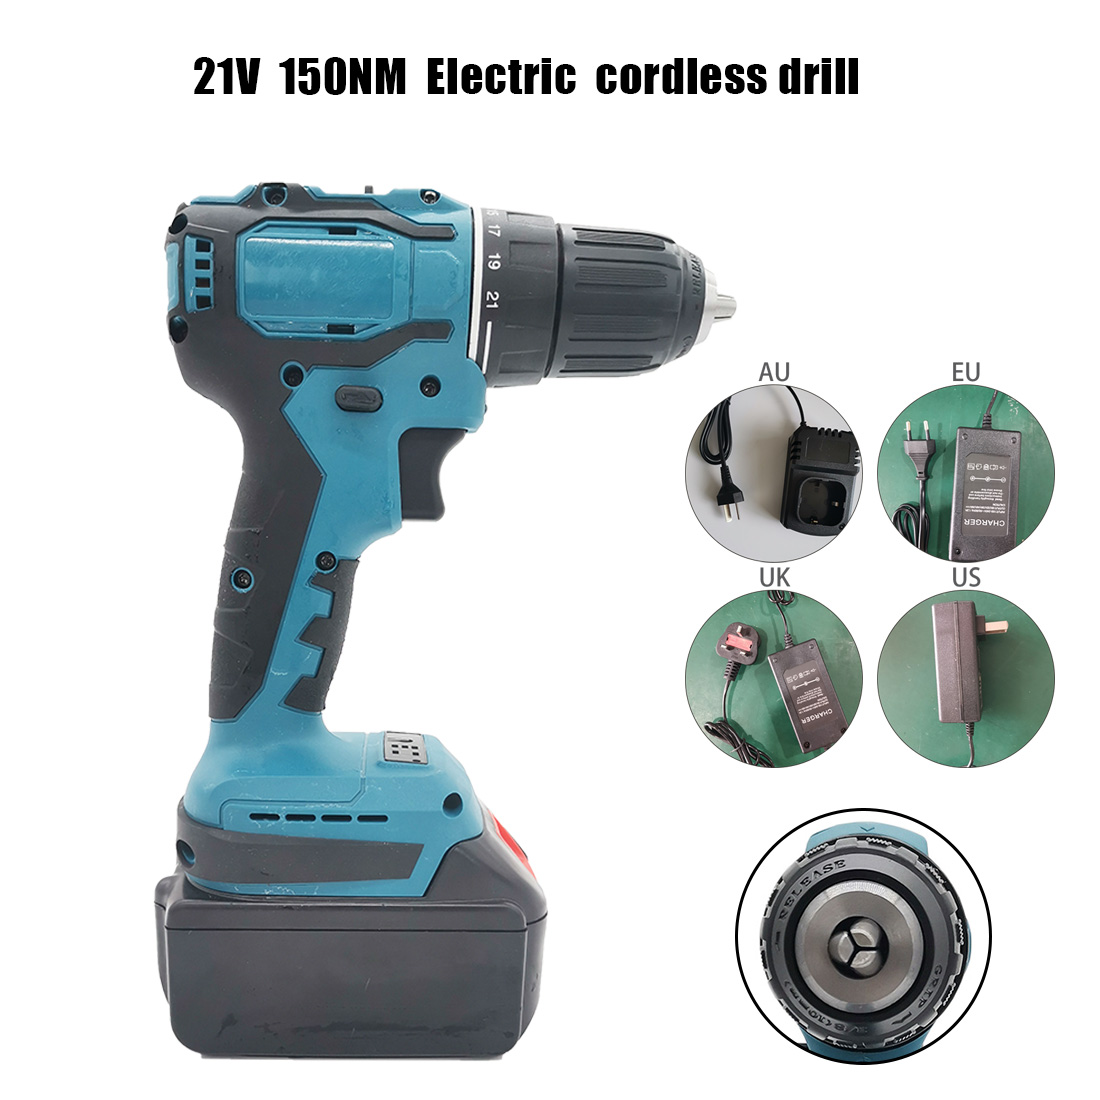 18-21V 80-150Nm Cordless Brushless Electric Impact Drill Torque Screwdriver Tool Cordless Drill+Charger+Lithium Ion Battery